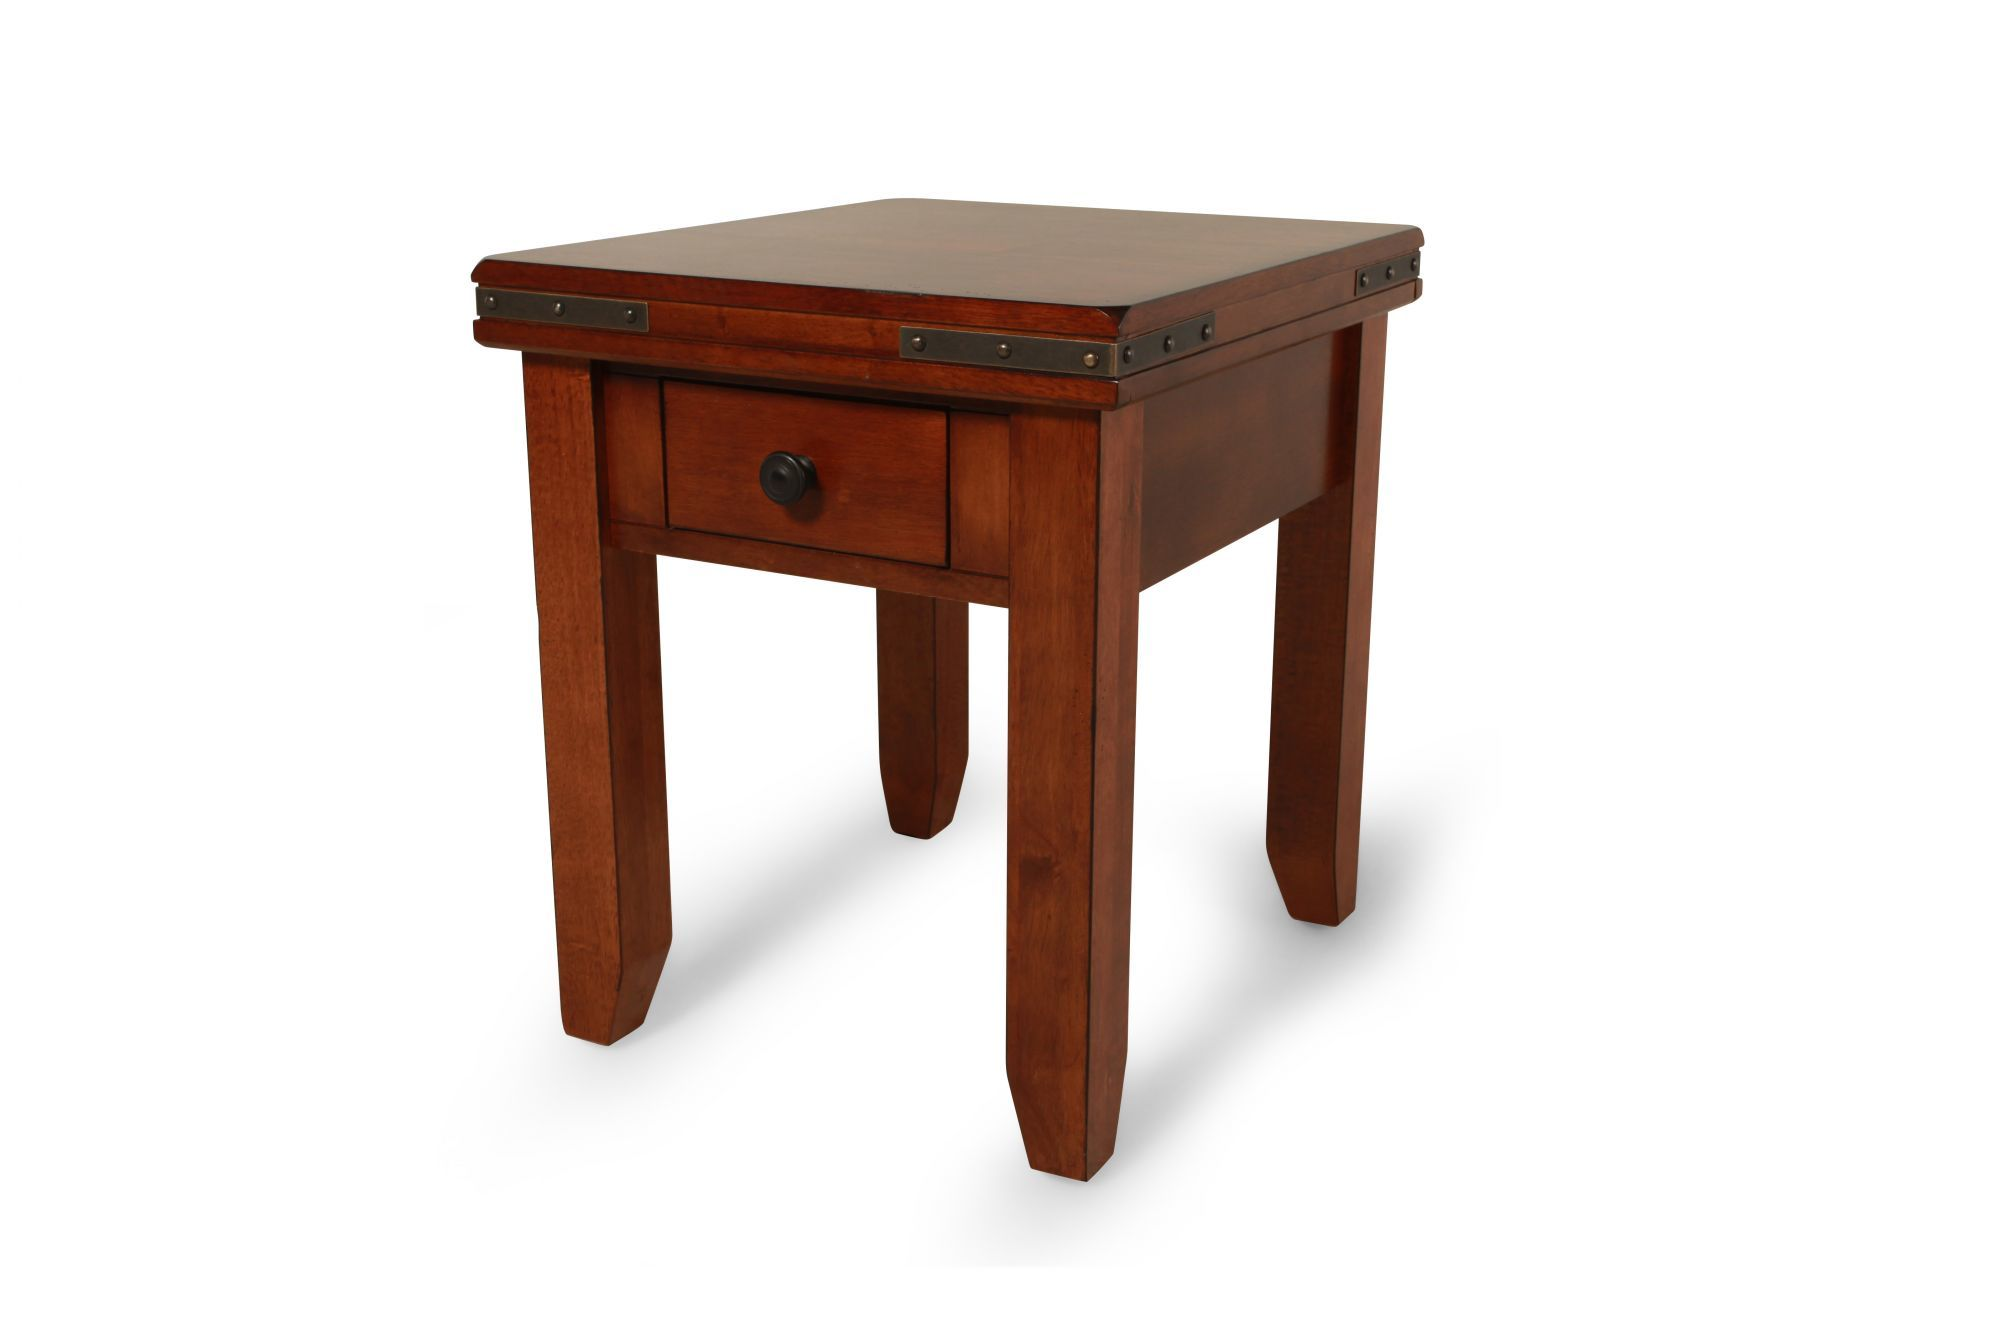 square traditional mango wood end table warm brown mathis win accent tablenbspin party bucket kirklands chairs oak floor threshold colorful lamps porcelain lamp white dresser all